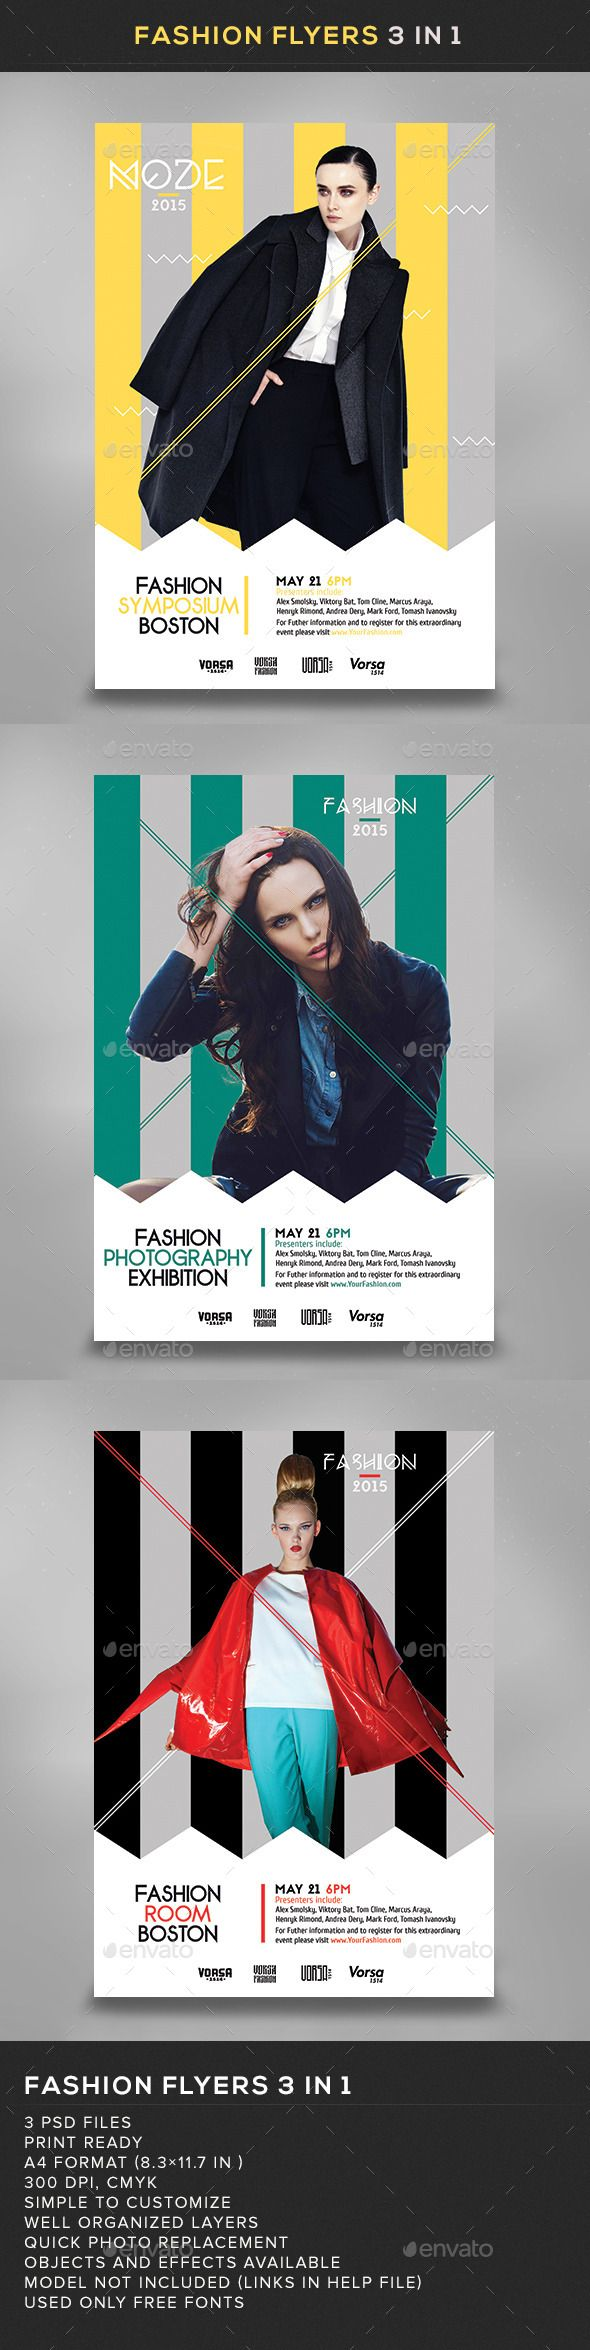 Fashion Flyers 3 In 1 Fonts Flyer Design Templates And